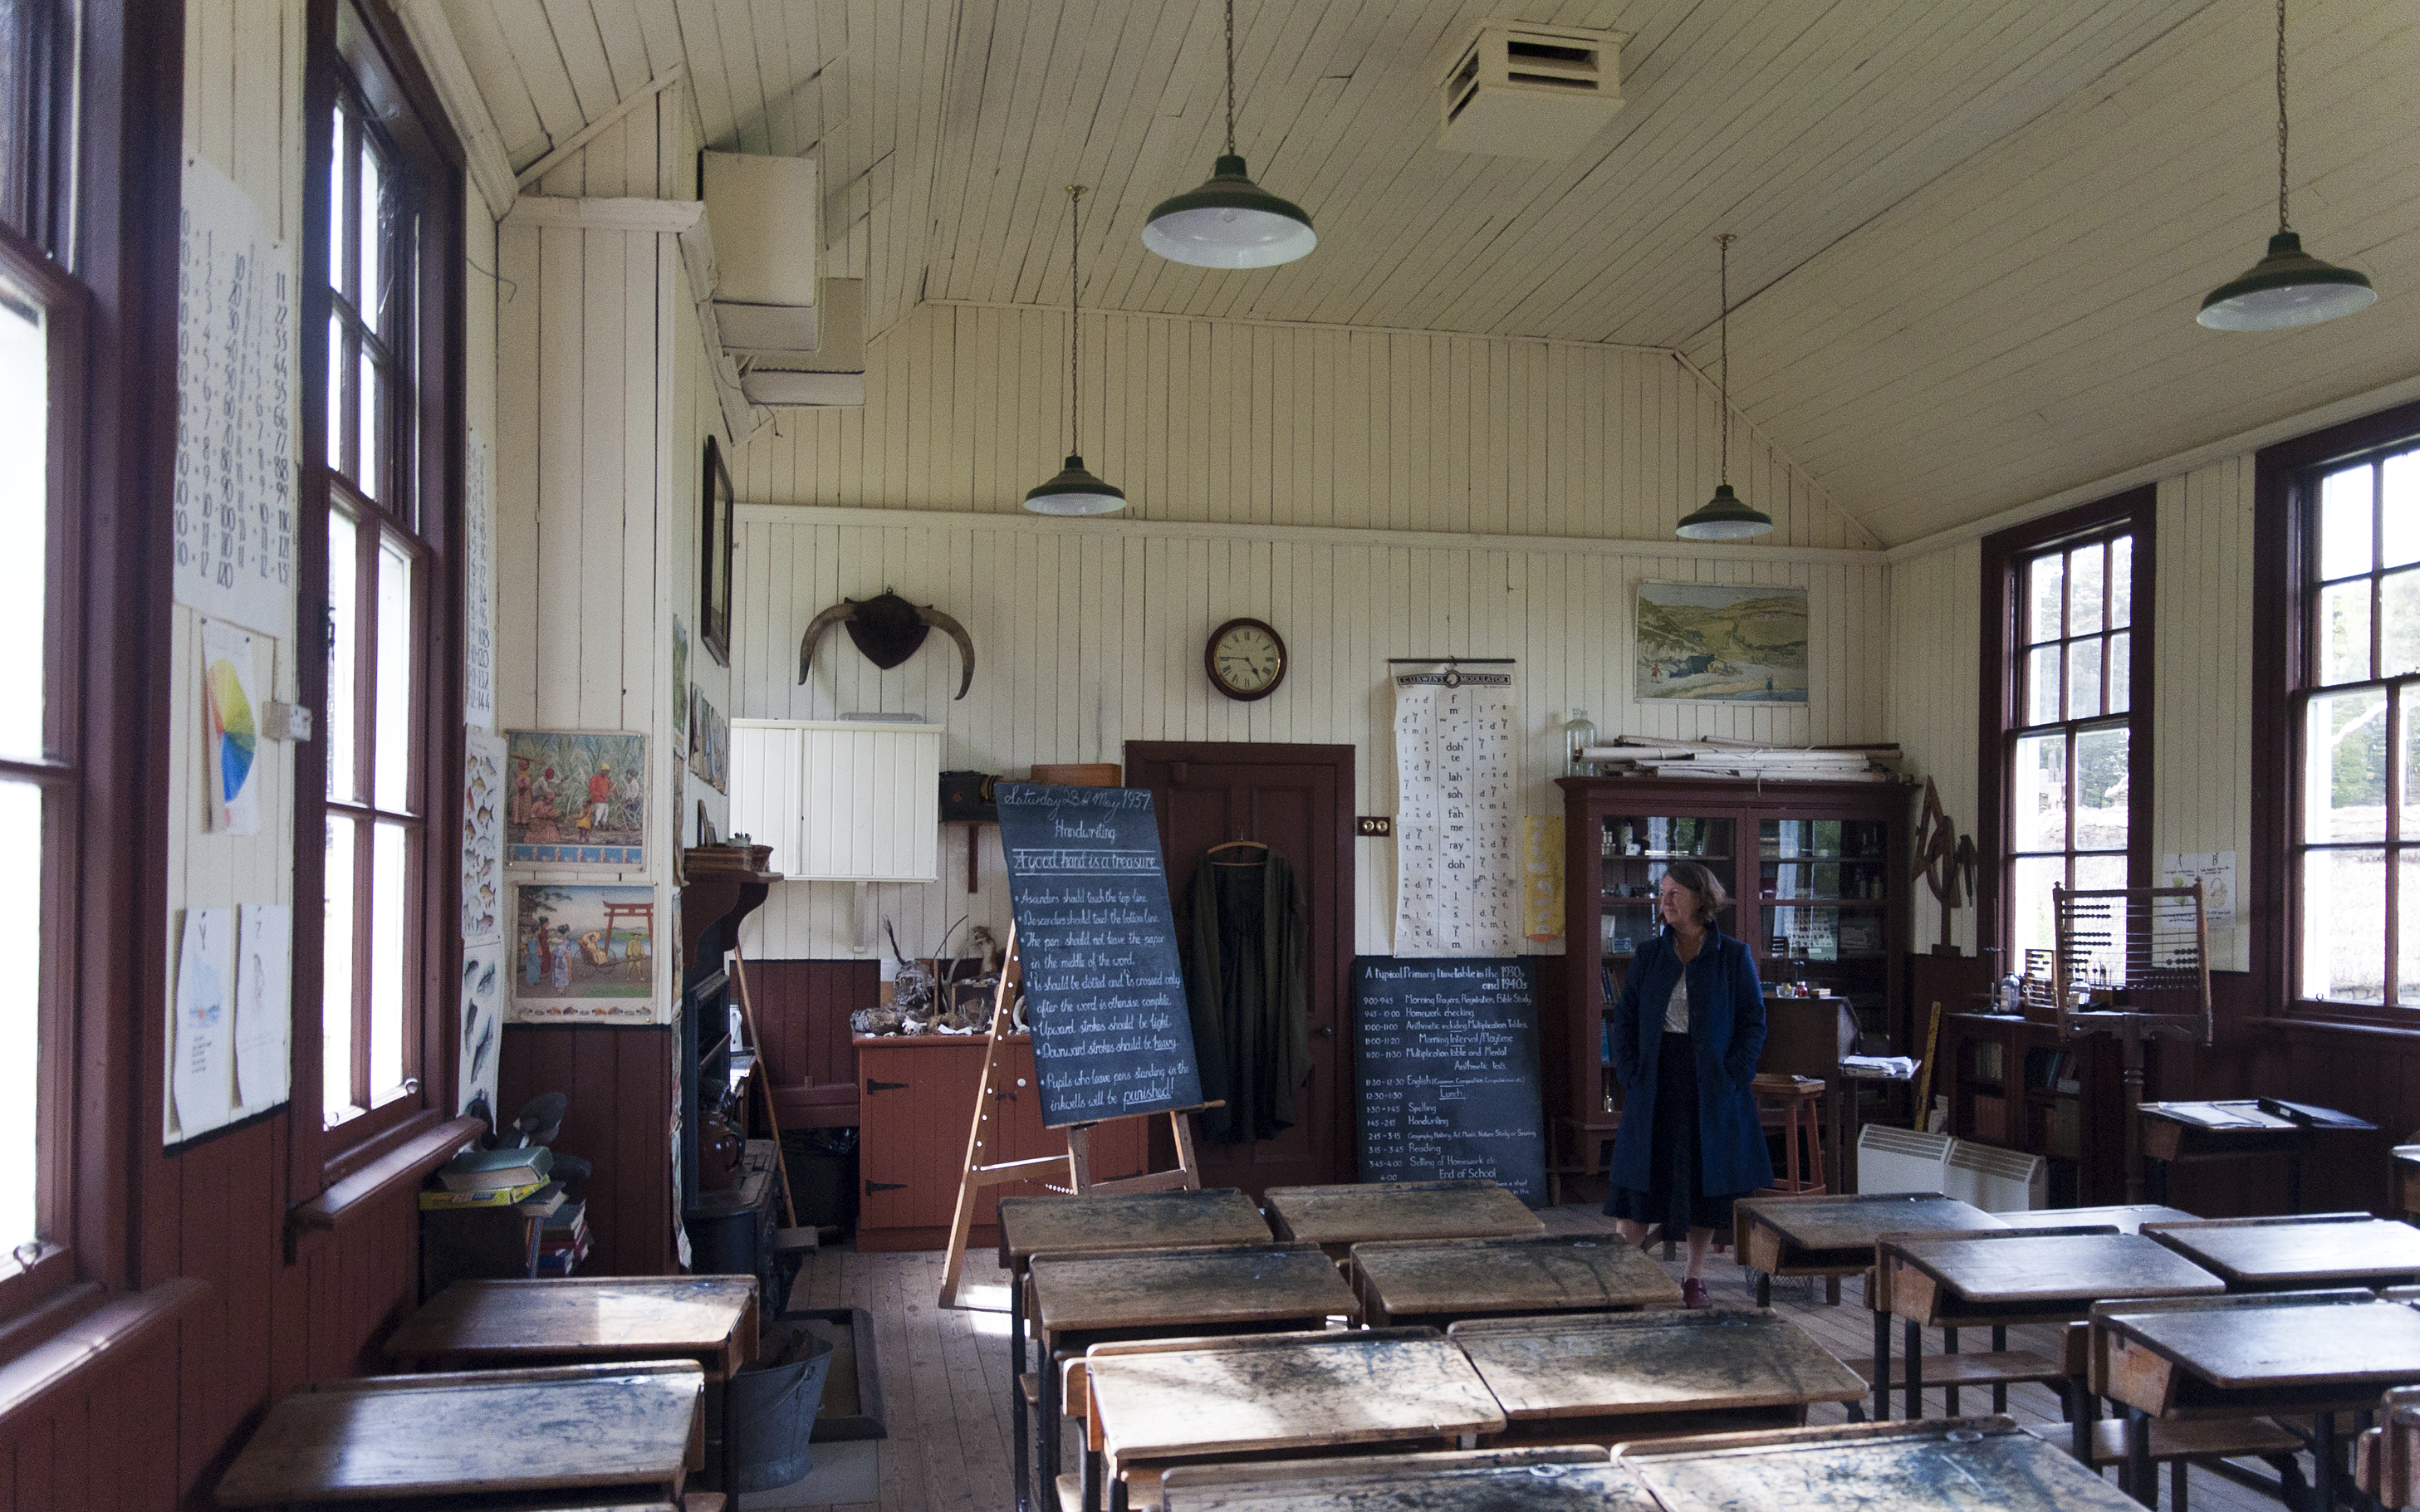 https://upload.wikimedia.org/wikipedia/commons/0/08/2011_Schotland_Highland_Folk_Museum_-_Knockbain_School_-_interieur_28-05-2011_17-44-47.png